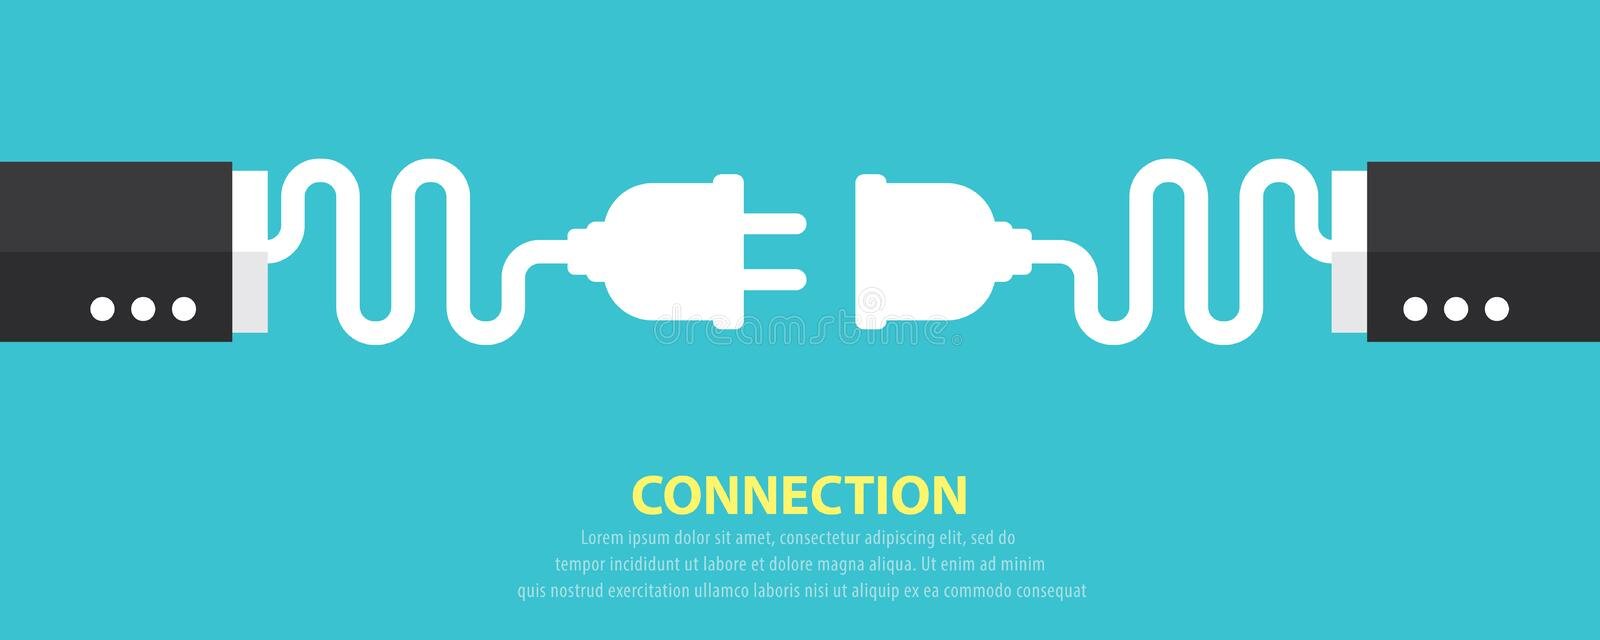 Connection concept stock illustration